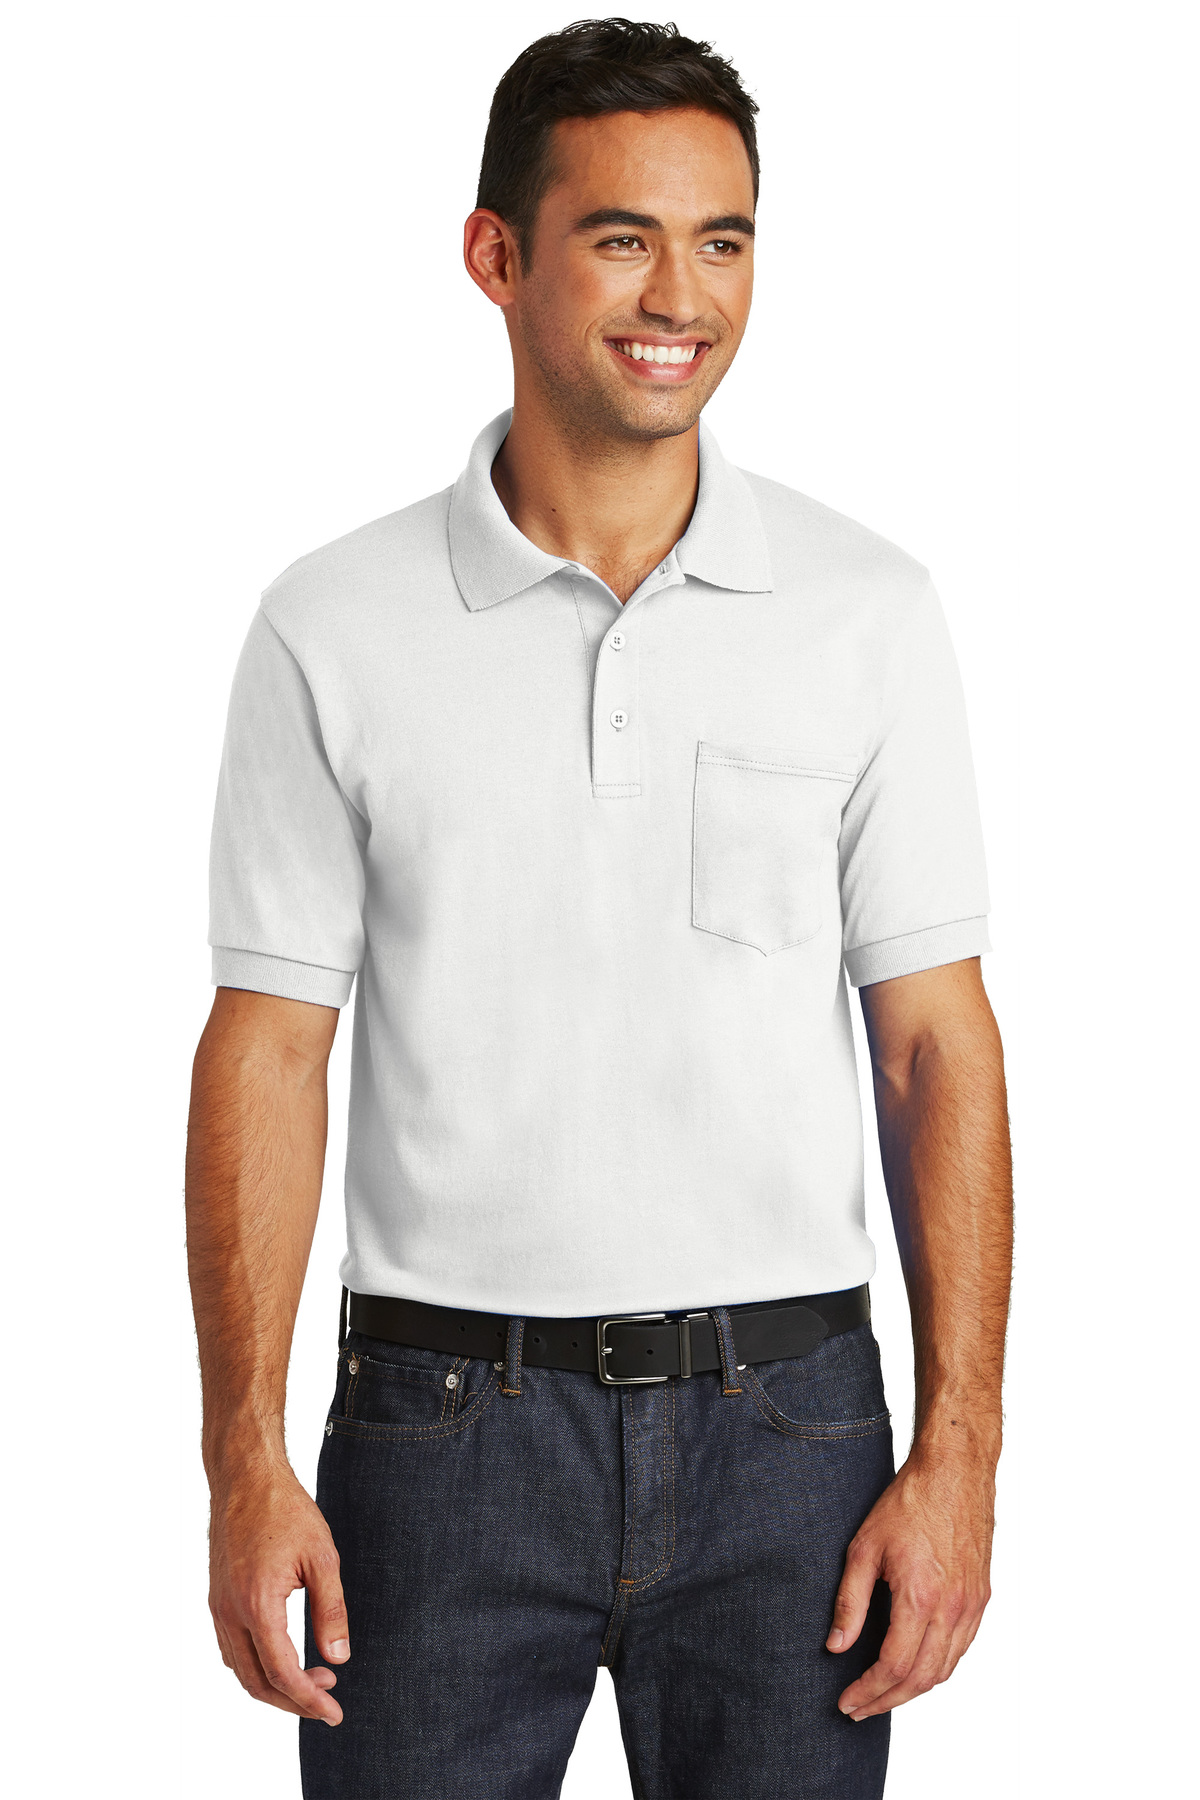 61d999ad Port & Company® Core Blend Jersey Knit Pocket Polo   Easy Care ...